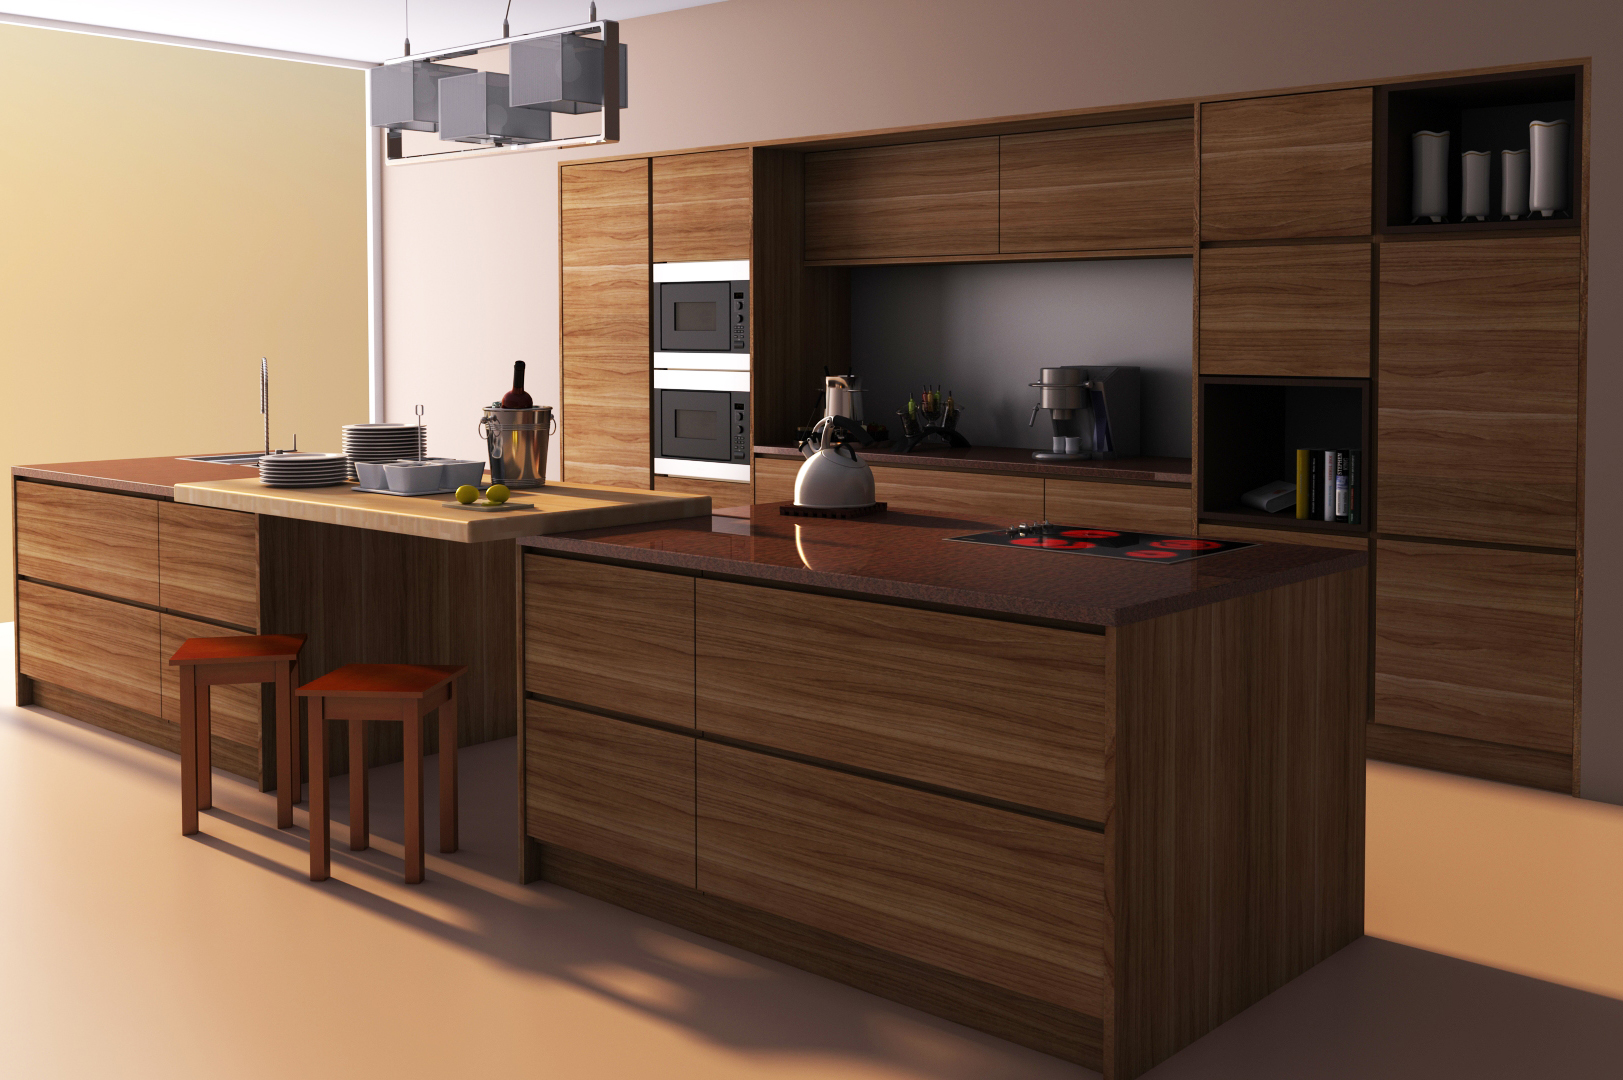 Modern kitchen 3d model max for Model kitchen images